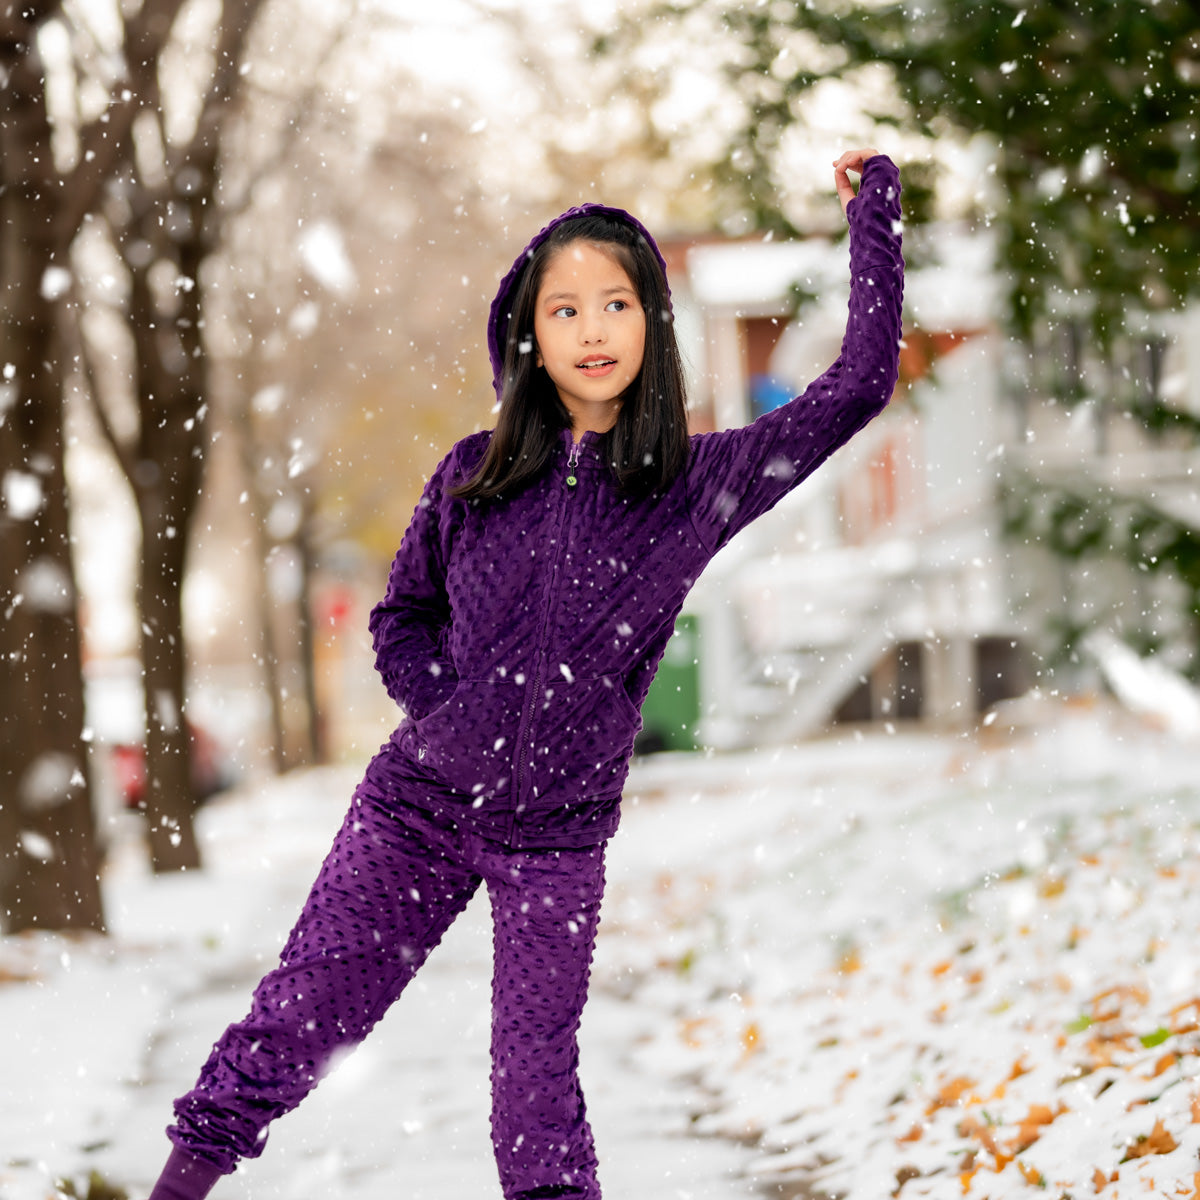 The Ultimate Christmas Gift Guide for Tween Girls